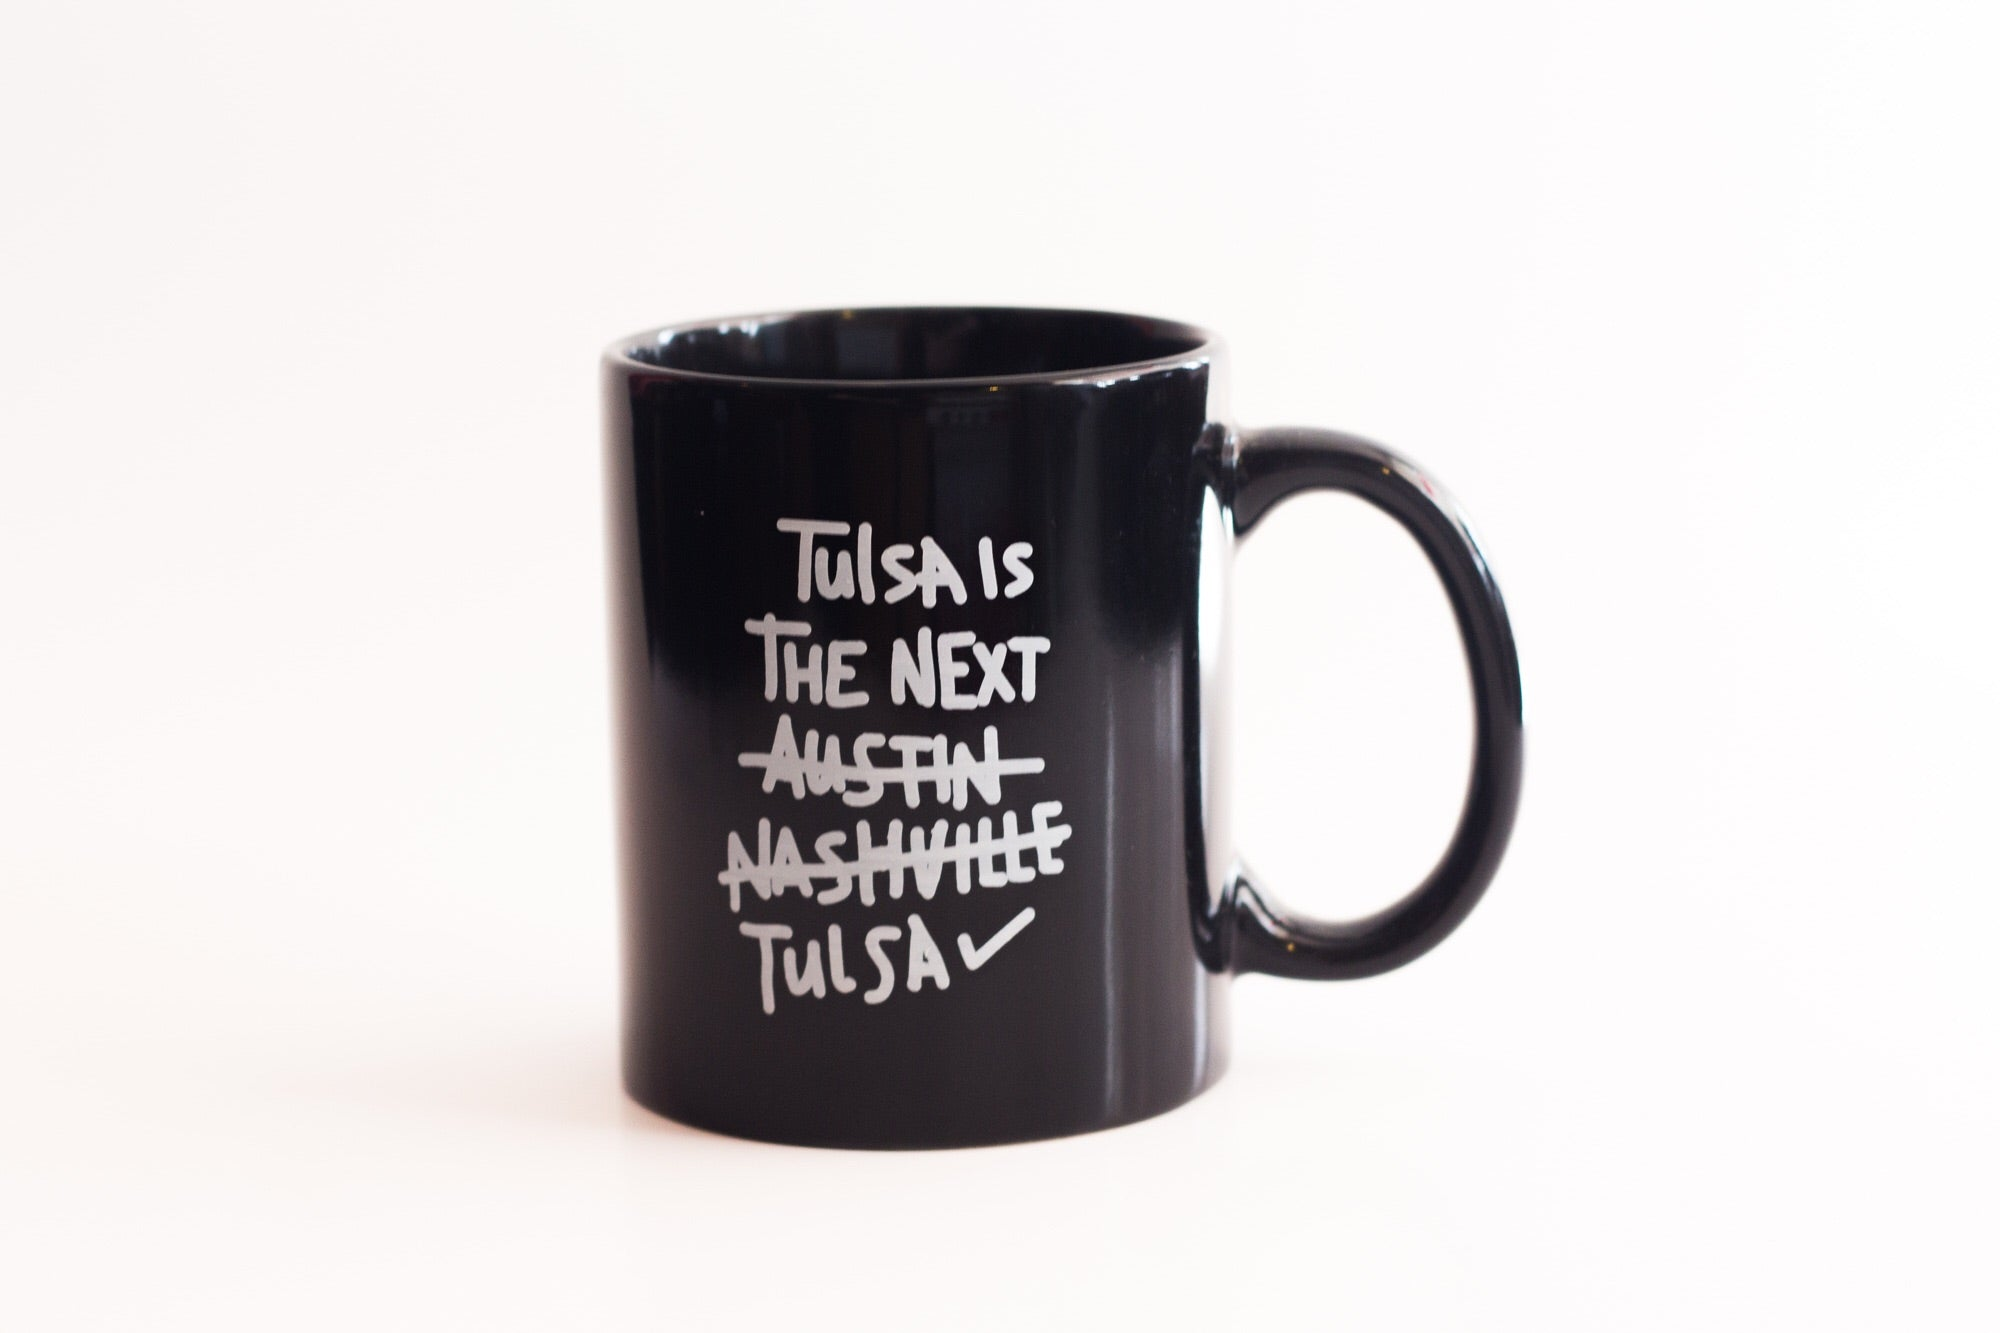 Tulsa is the next Tulsa Coffee Mug